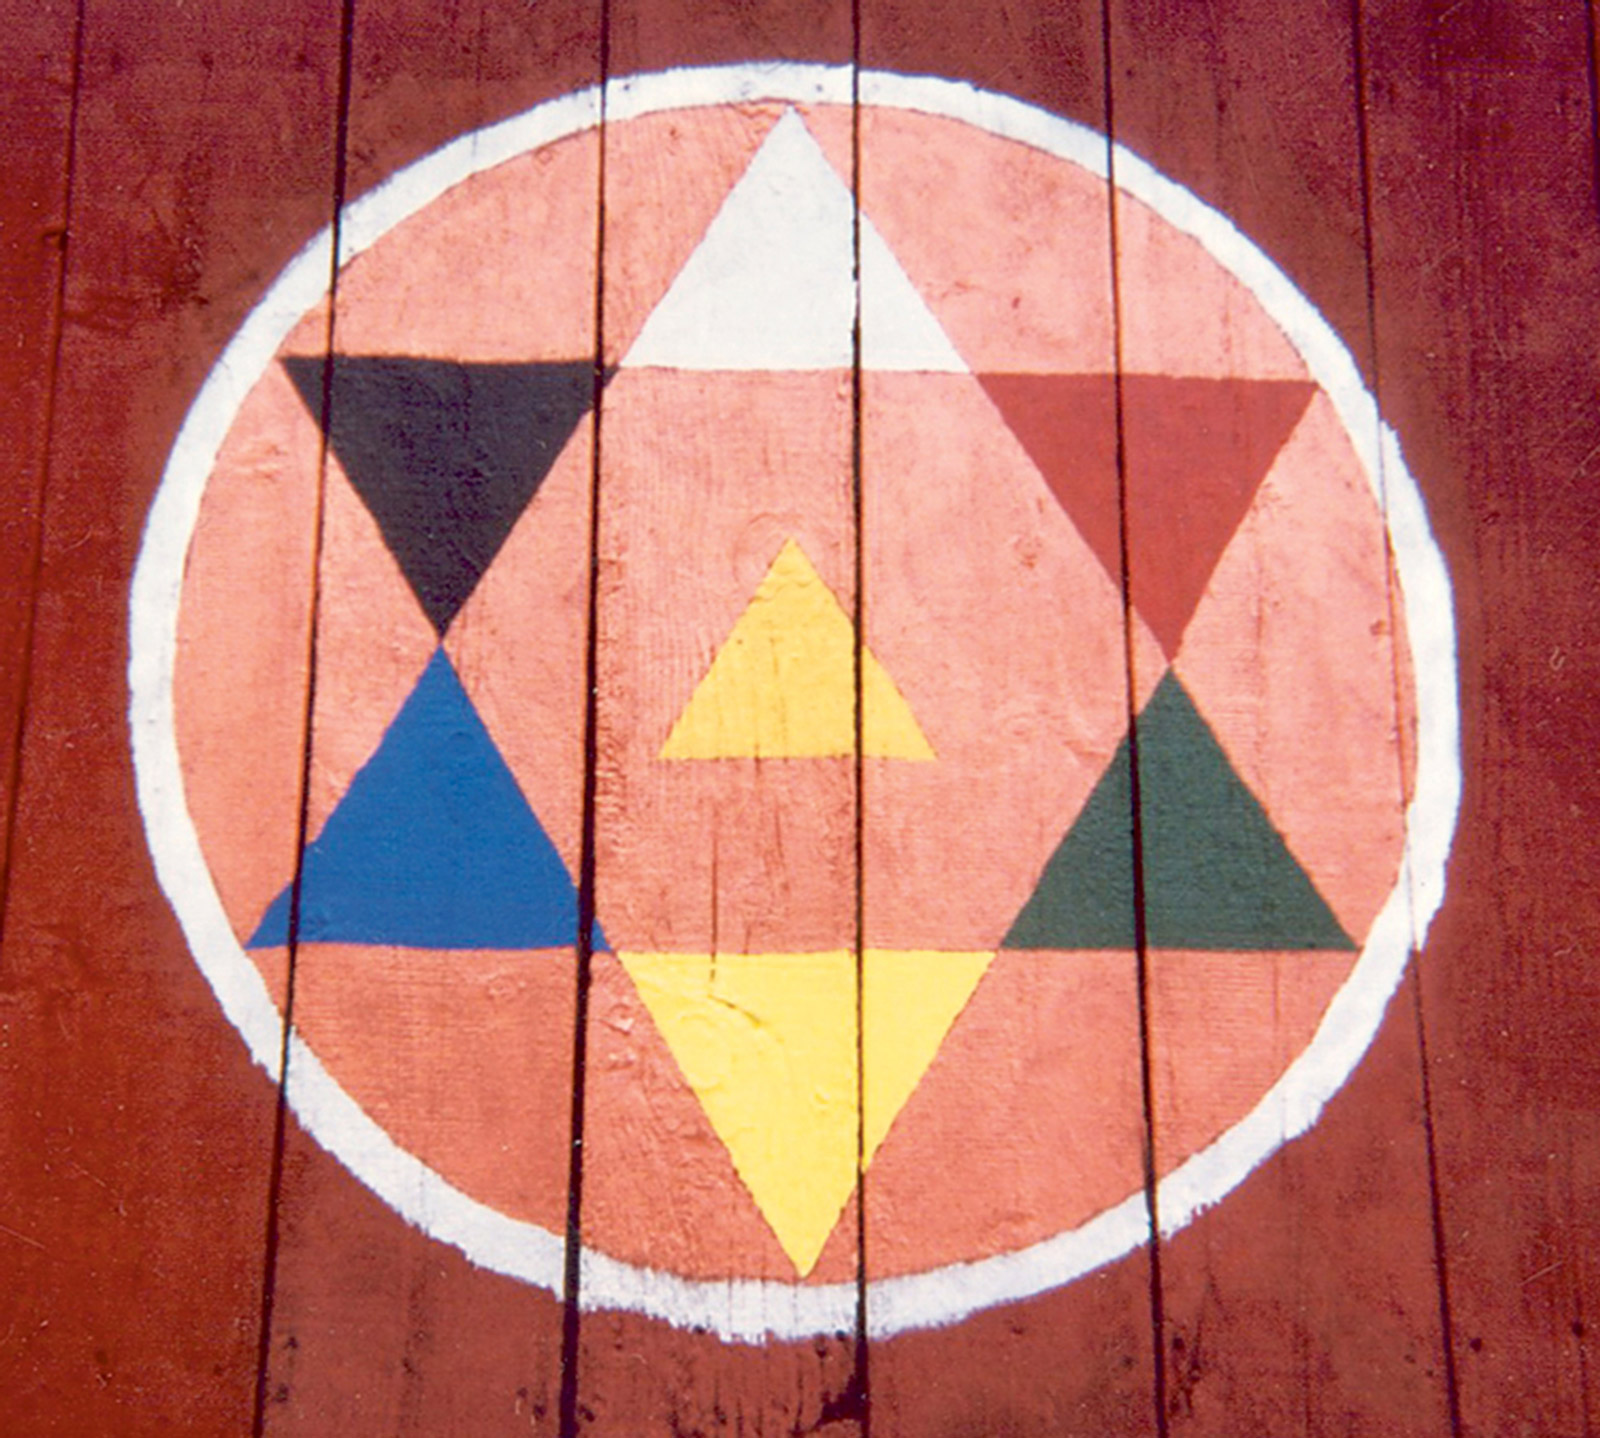 hight resolution of  and fire by marking their barns with star shaped hex signs as sure in their efficacy as anything in life may be one regional scholar suggested